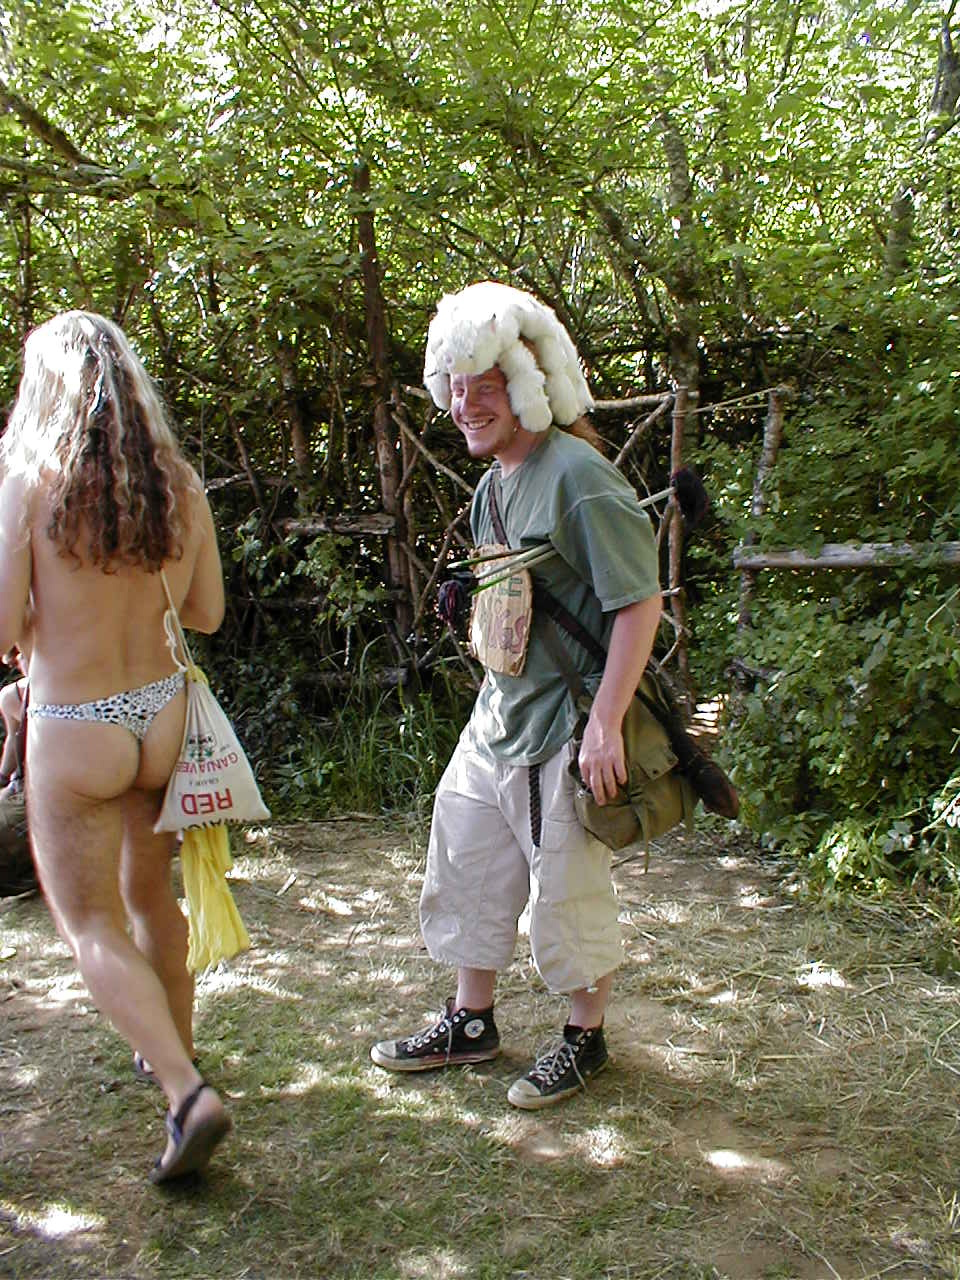 Oregon Country Fair 2000